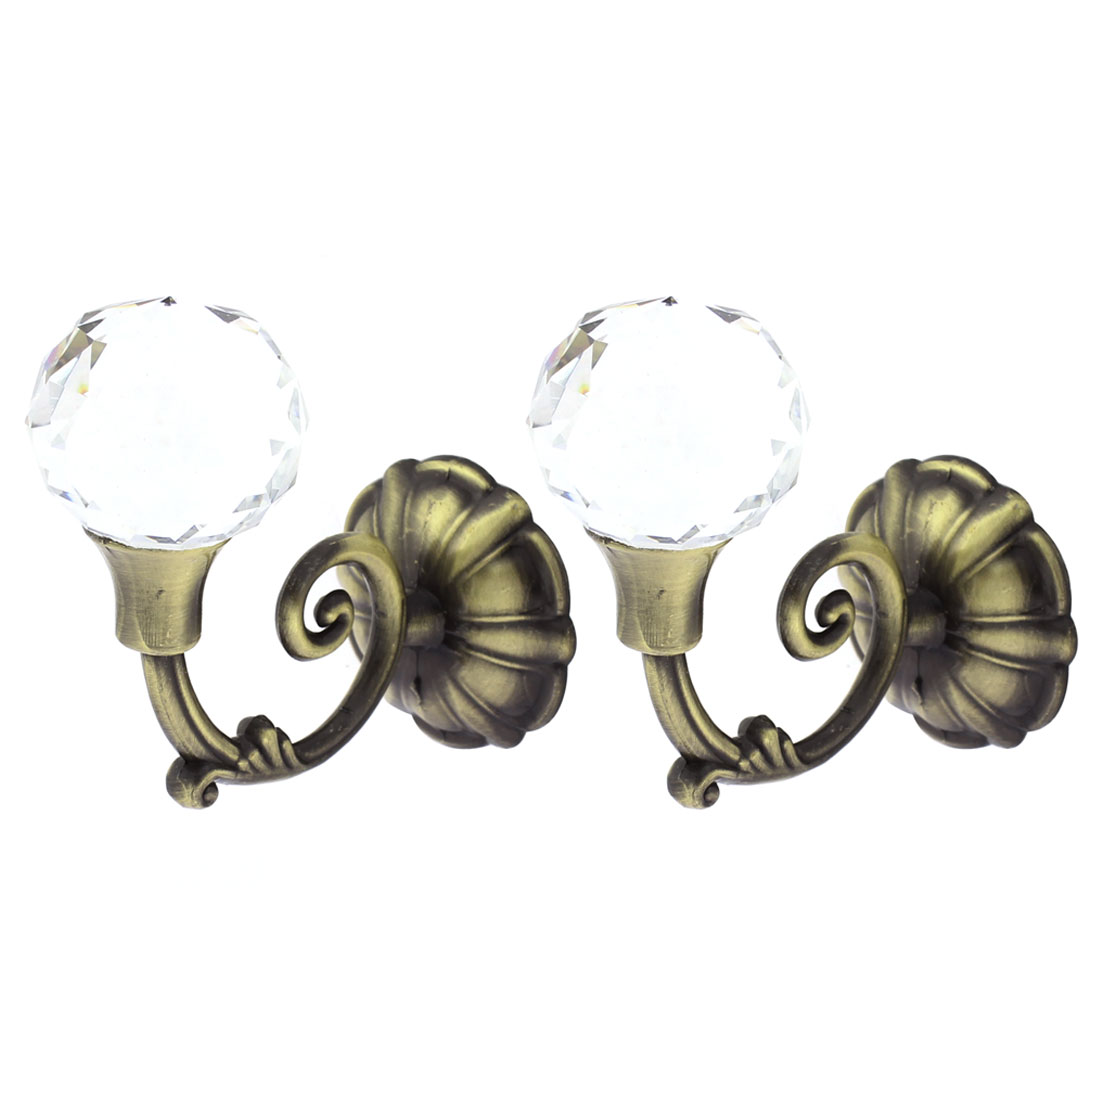 2Pcs Crystal Bead Drapery Curtain Hook Holder Hookback Tieback Bronze Tone